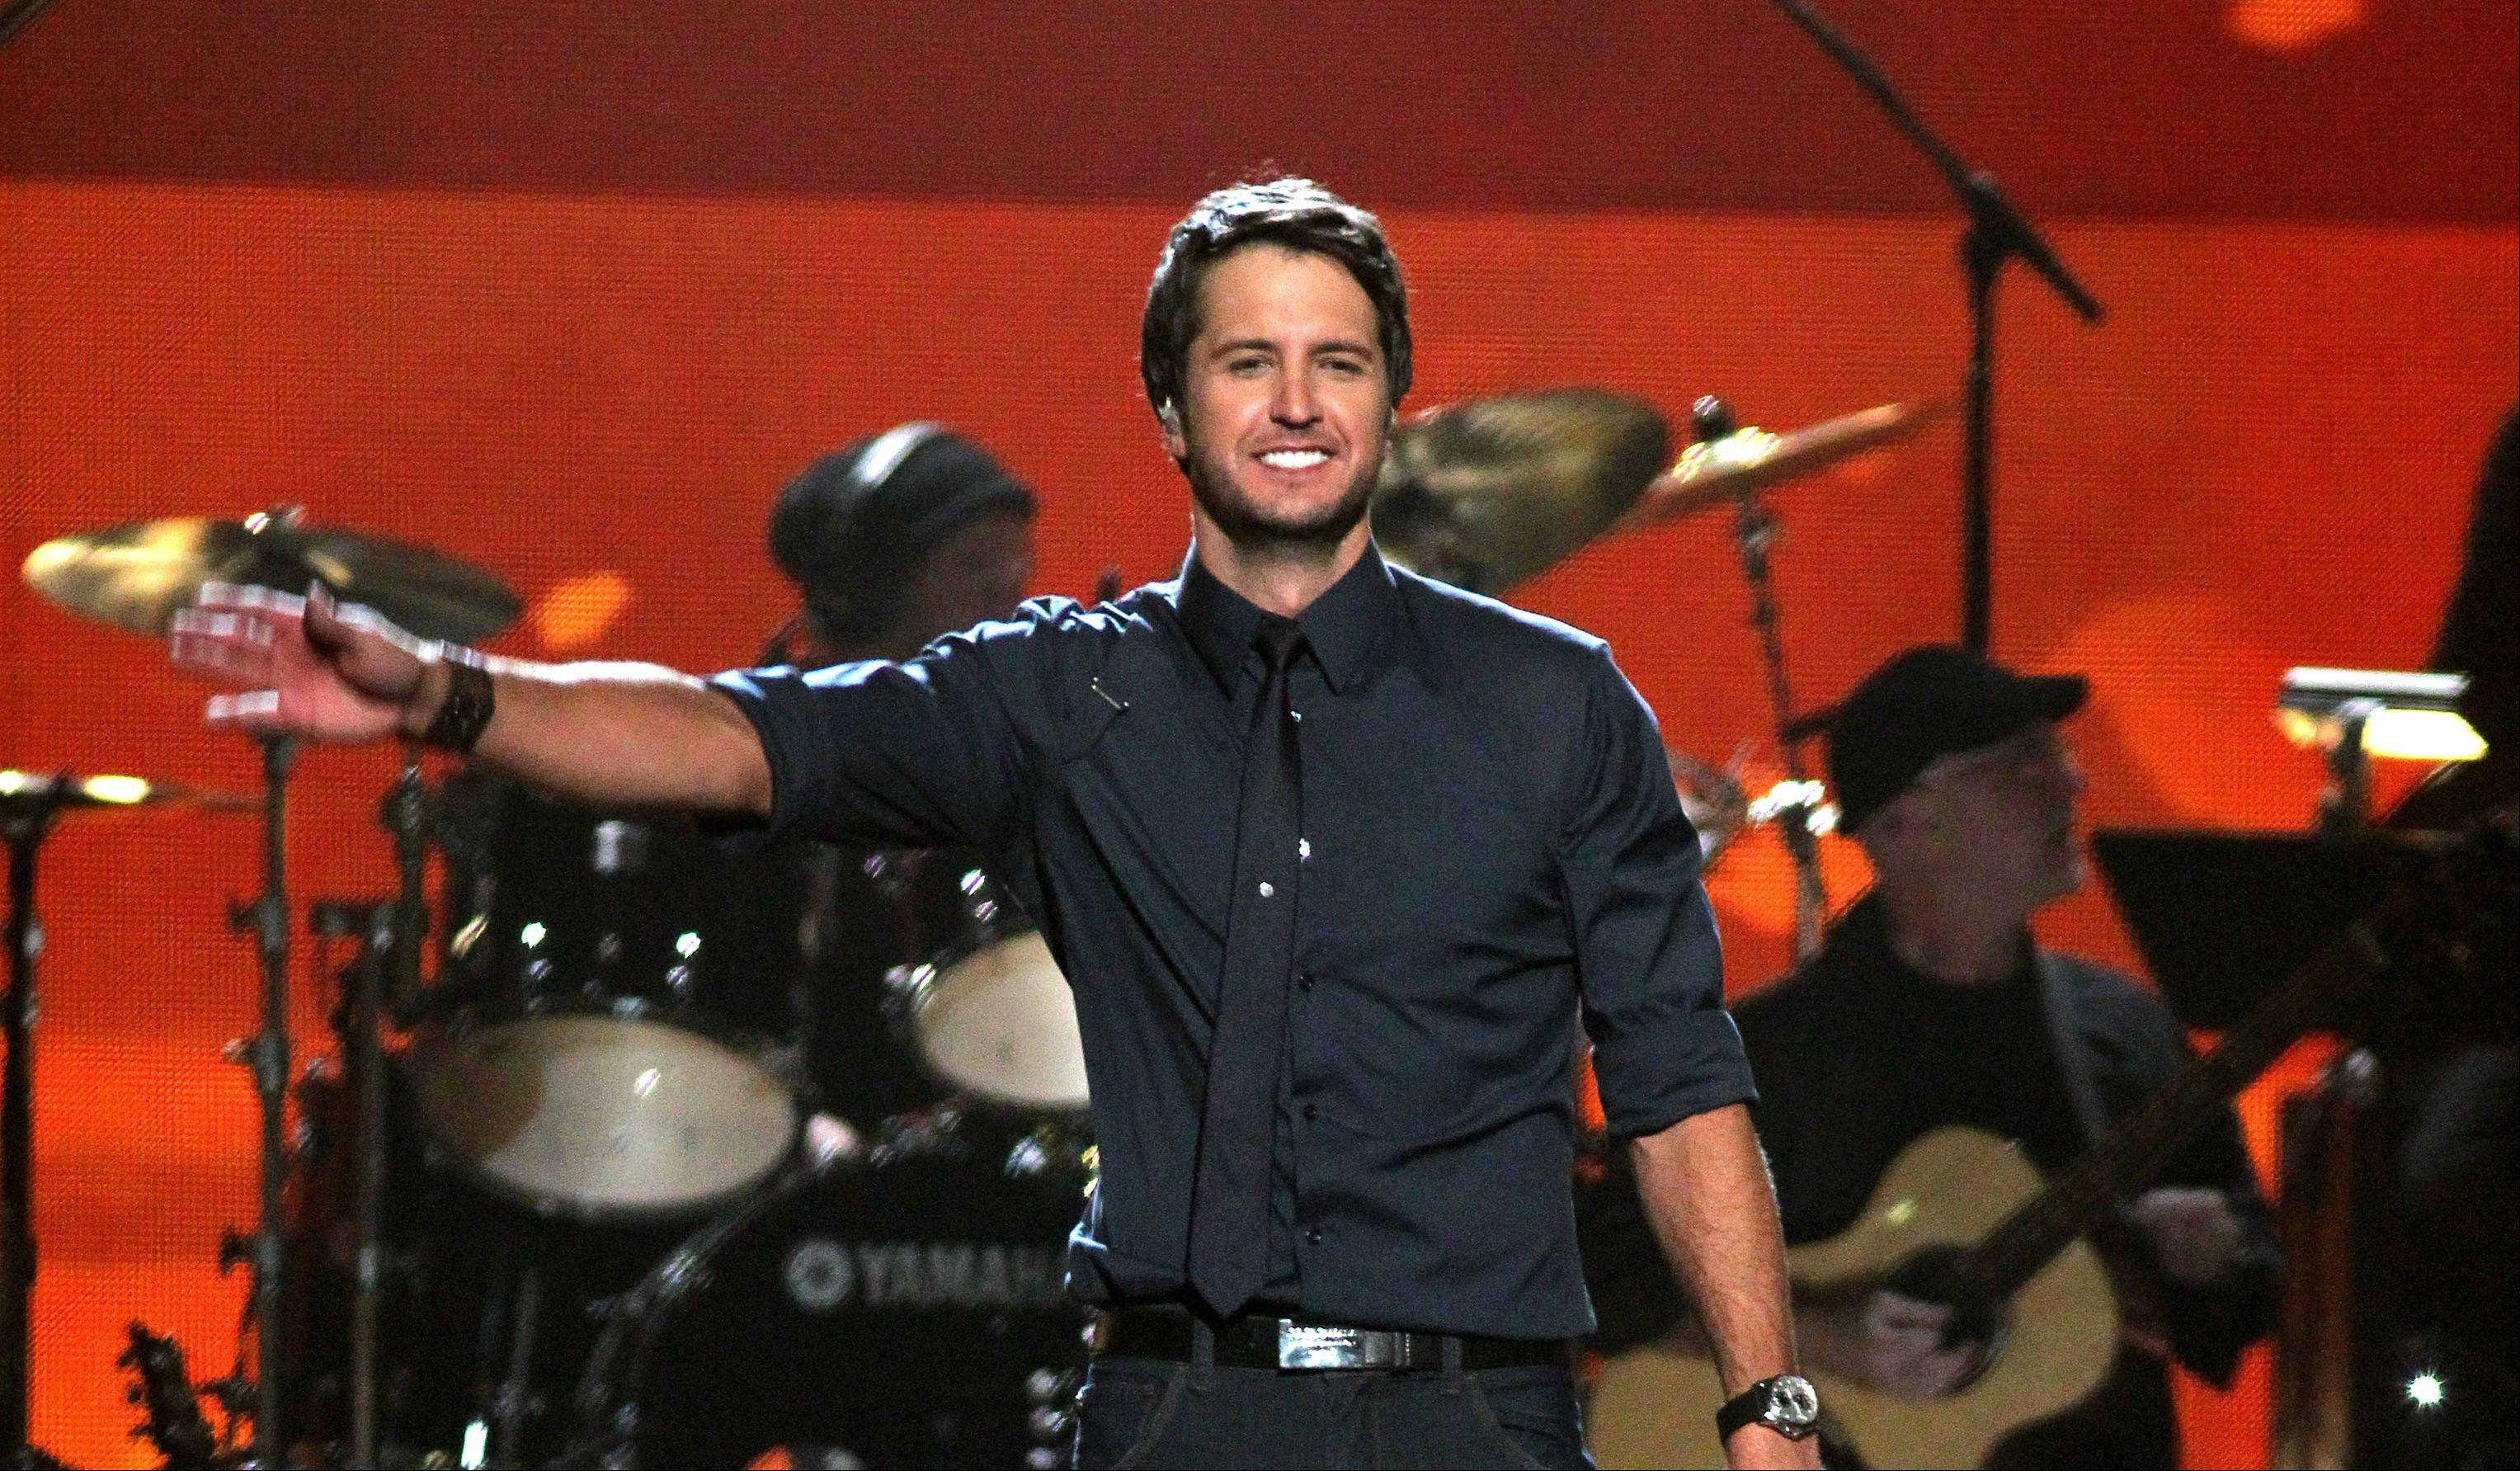 Luke Bryan leads the 2012 American Country Awards nominees with seven nominations; Lady Antebellum and Zac Brown Band each earned six nods; and Eric Church and Taylor Swift garnered five nominations.